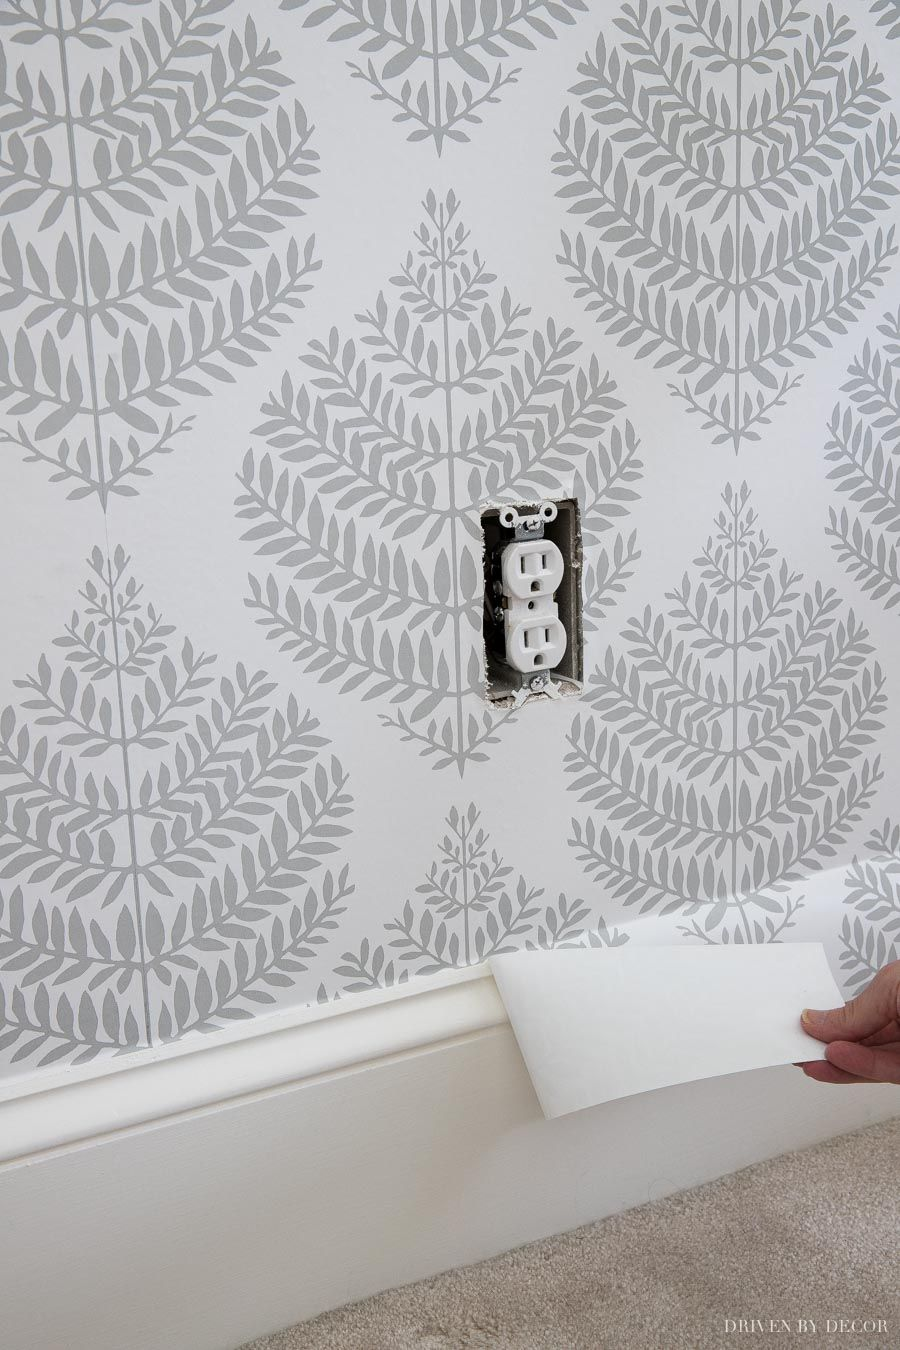 Can You Wallpaper Over Textured Walls At Home With Ashley In 2020 Budget Home Decorating Textured Walls Diy Home Decor